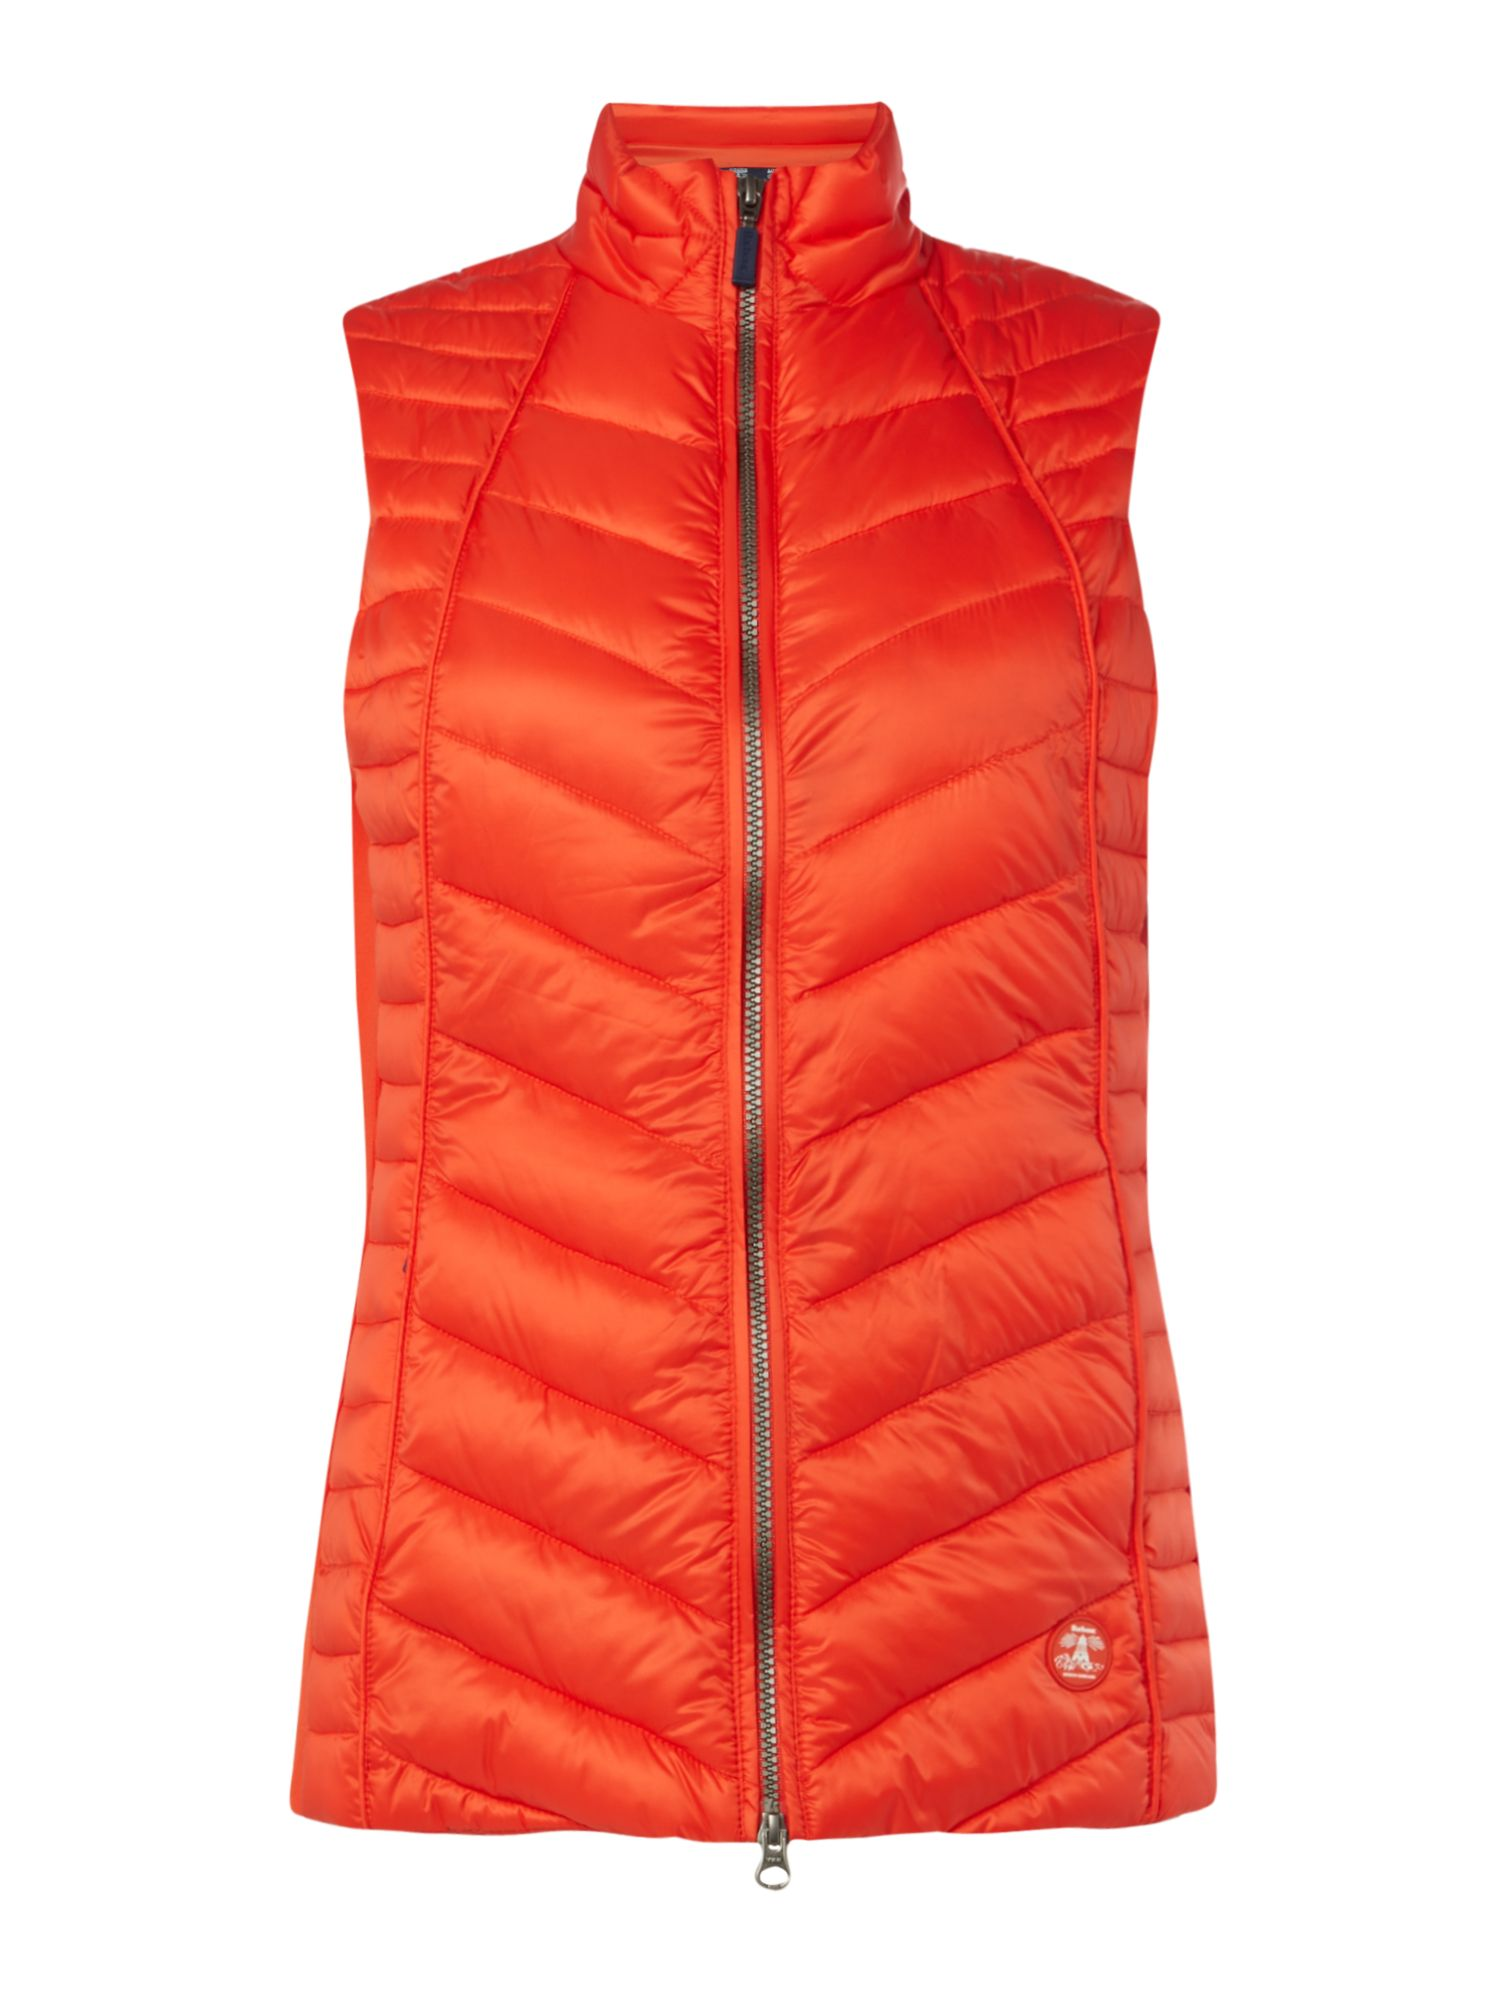 Barbour Chevron Quilted Gilet With Jersey Side Panels, Orange